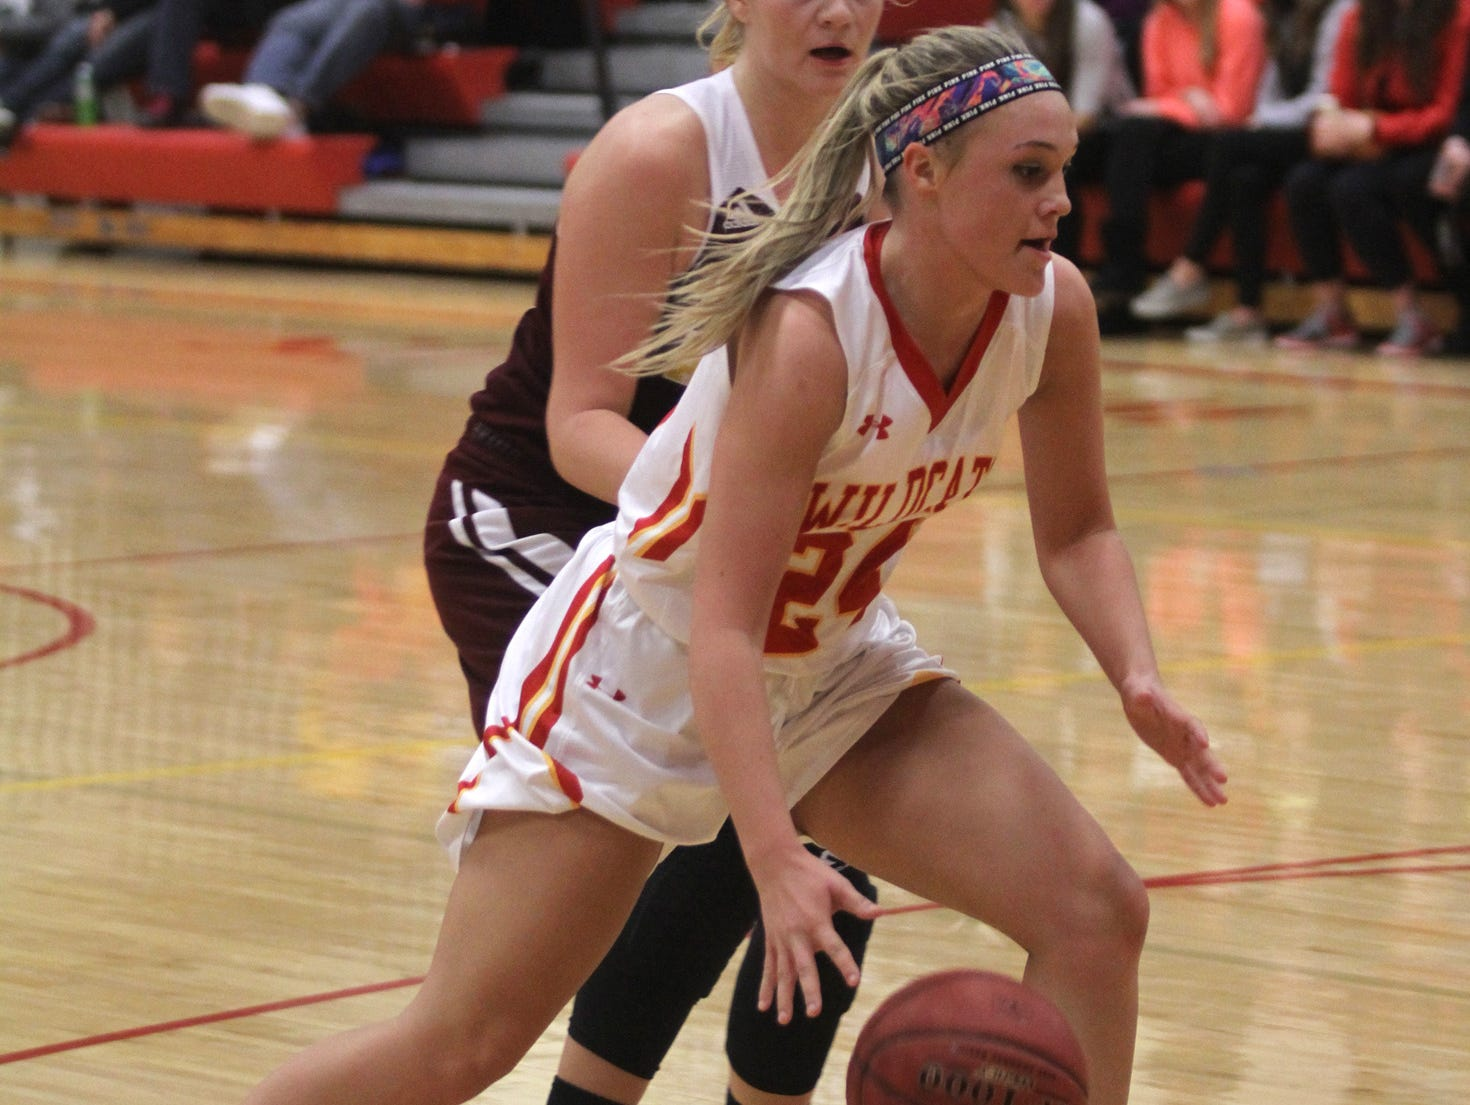 Carlisle junior Hailey Brunsen drives to the basket. Class 4-A 15th-ranked Carlisle beat Ankeny 57-44 in the Wildcats' home opener on Nov. 24.